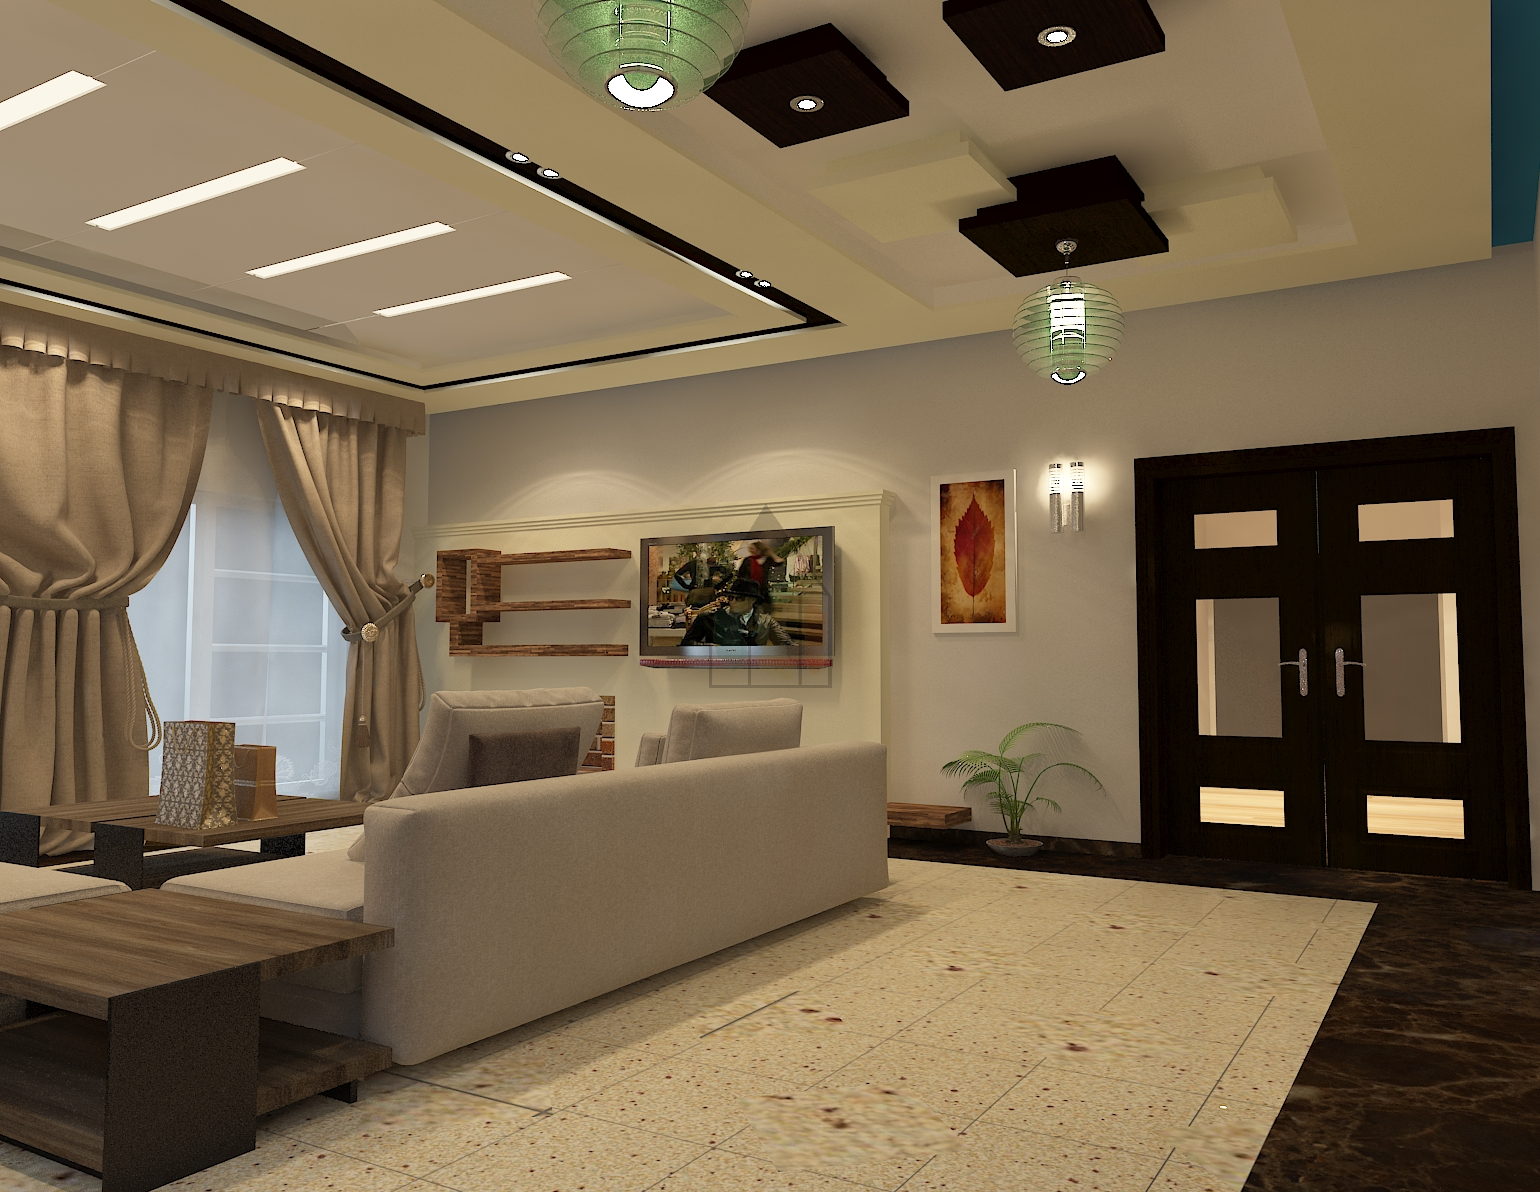 Tv lounge designs in pakistan from many other tv lounge for Room design in pakistan